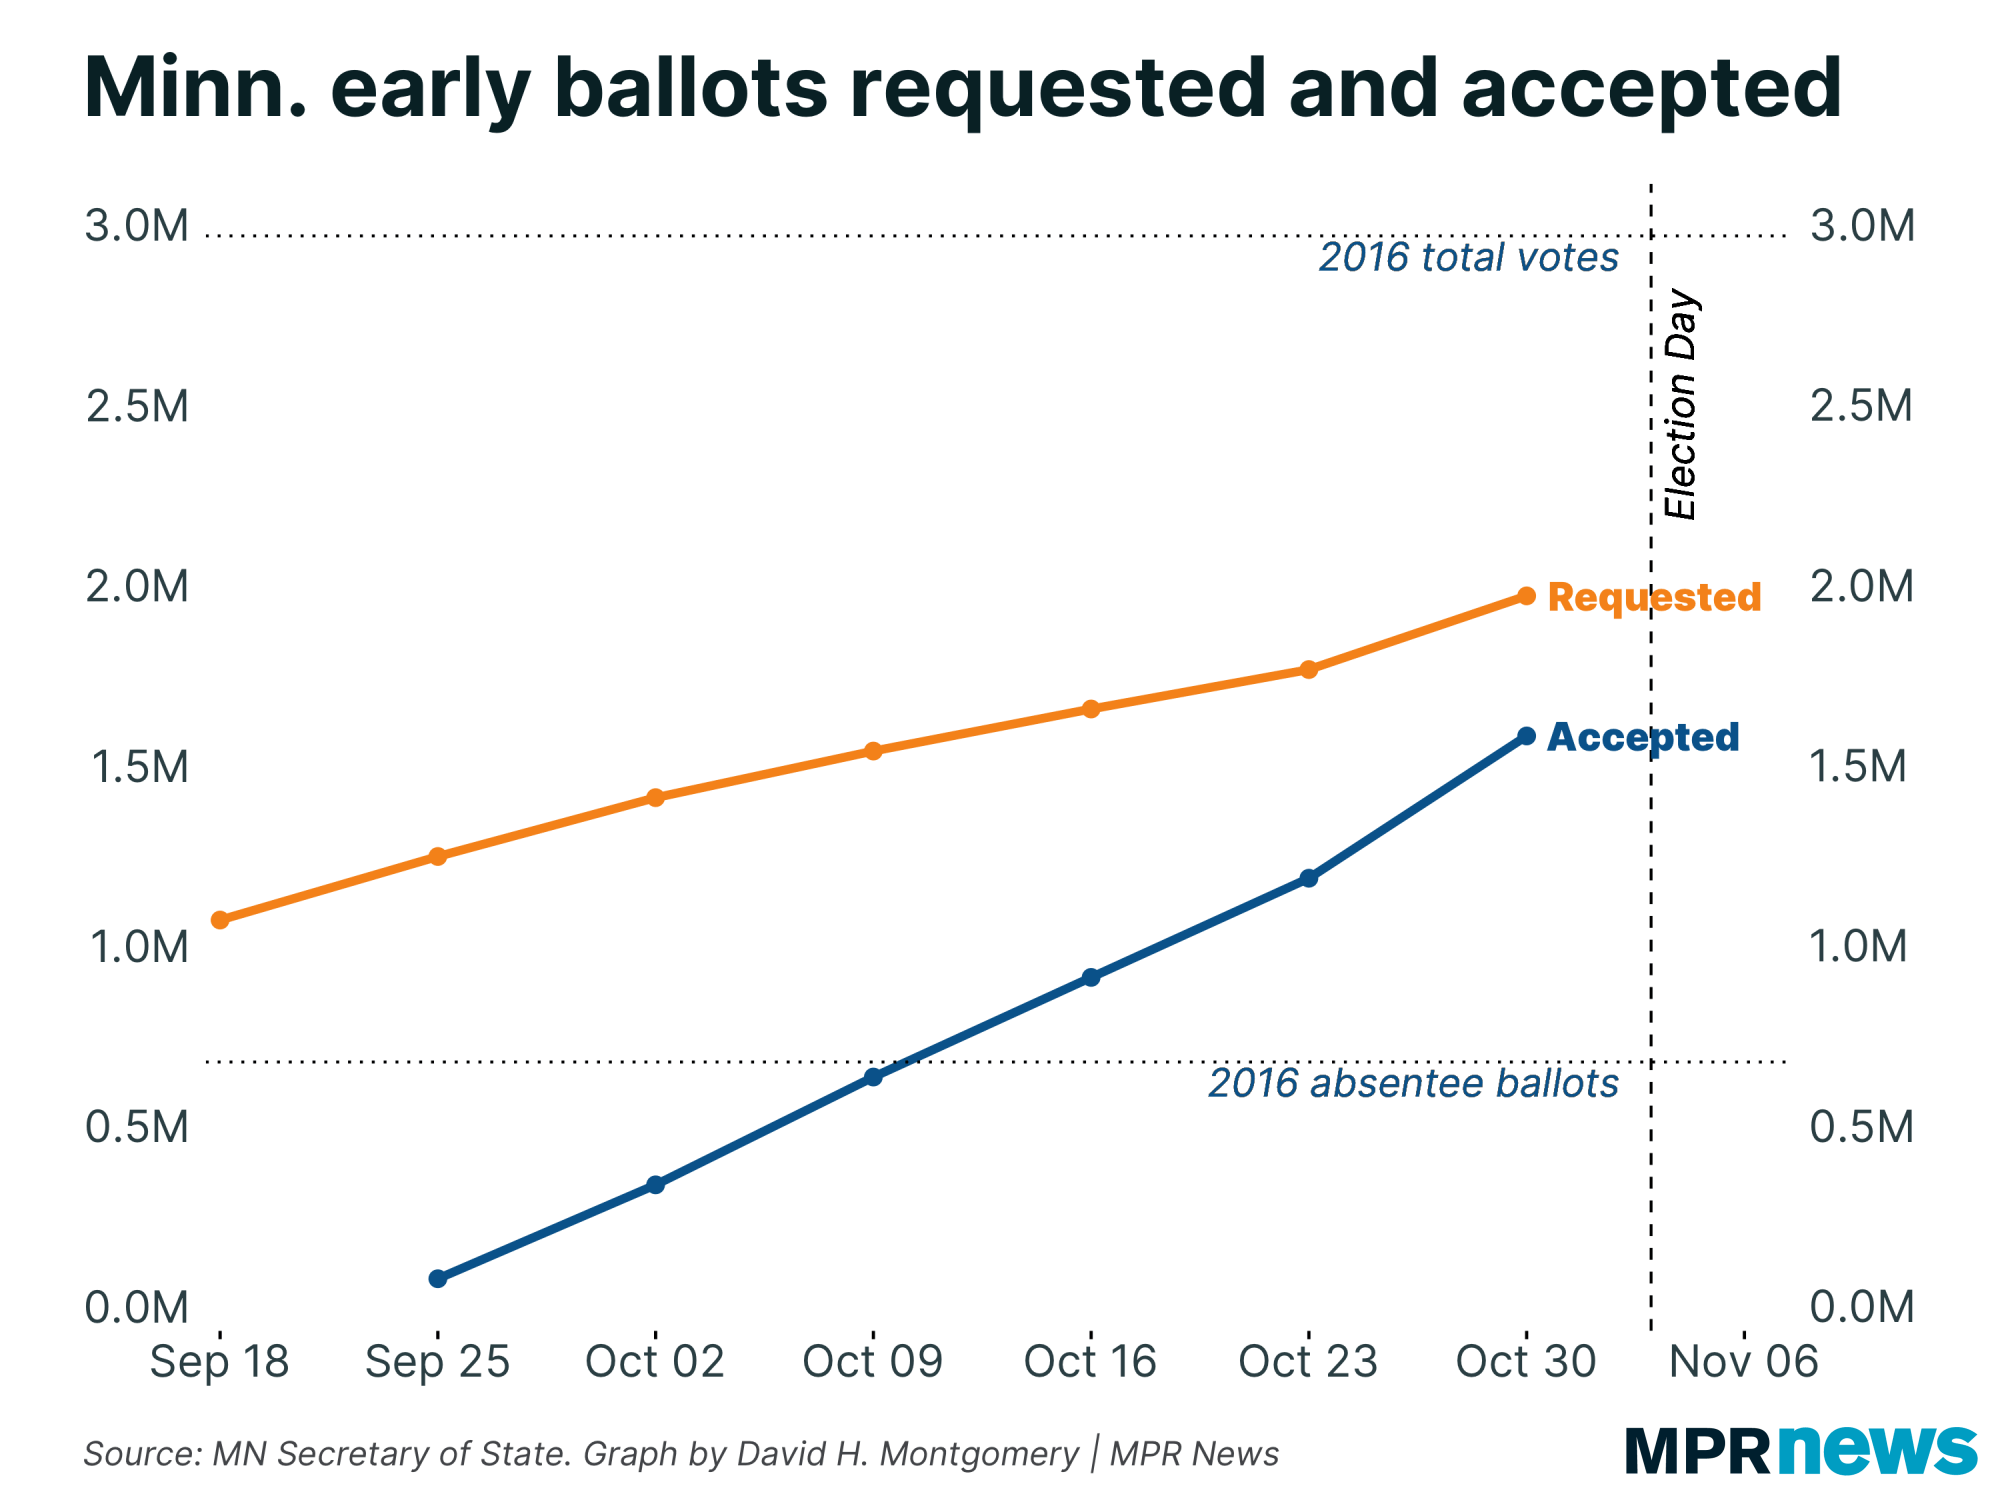 Absentee ballots requested and accepted over time in Minnesota